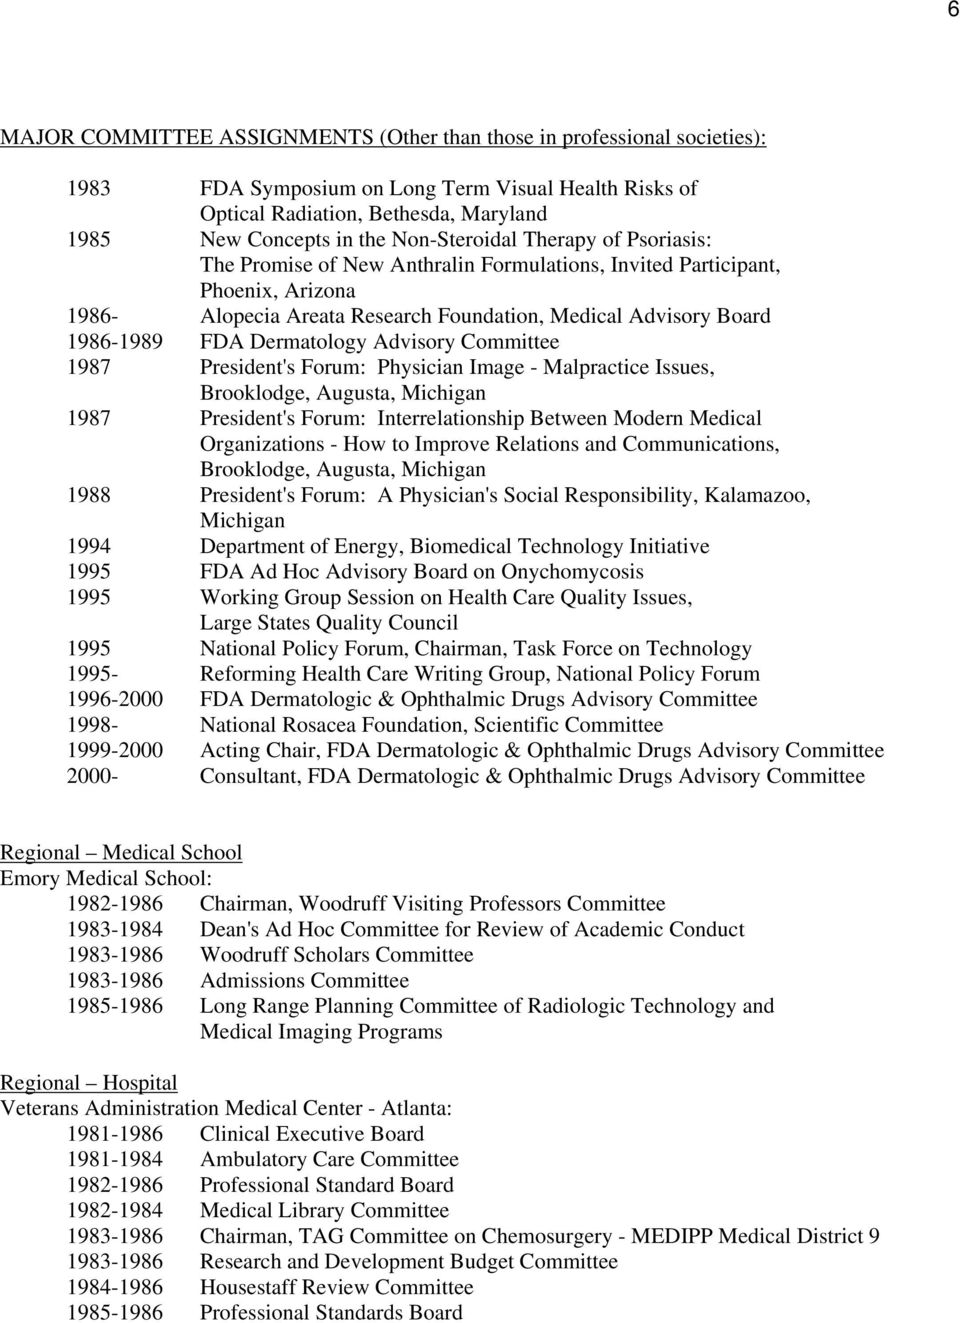 Dermatology Advisory Committee 1987 President's Forum: Physician Image - Malpractice Issues, Brooklodge, Augusta, Michigan 1987 President's Forum: Interrelationship Between Modern Medical